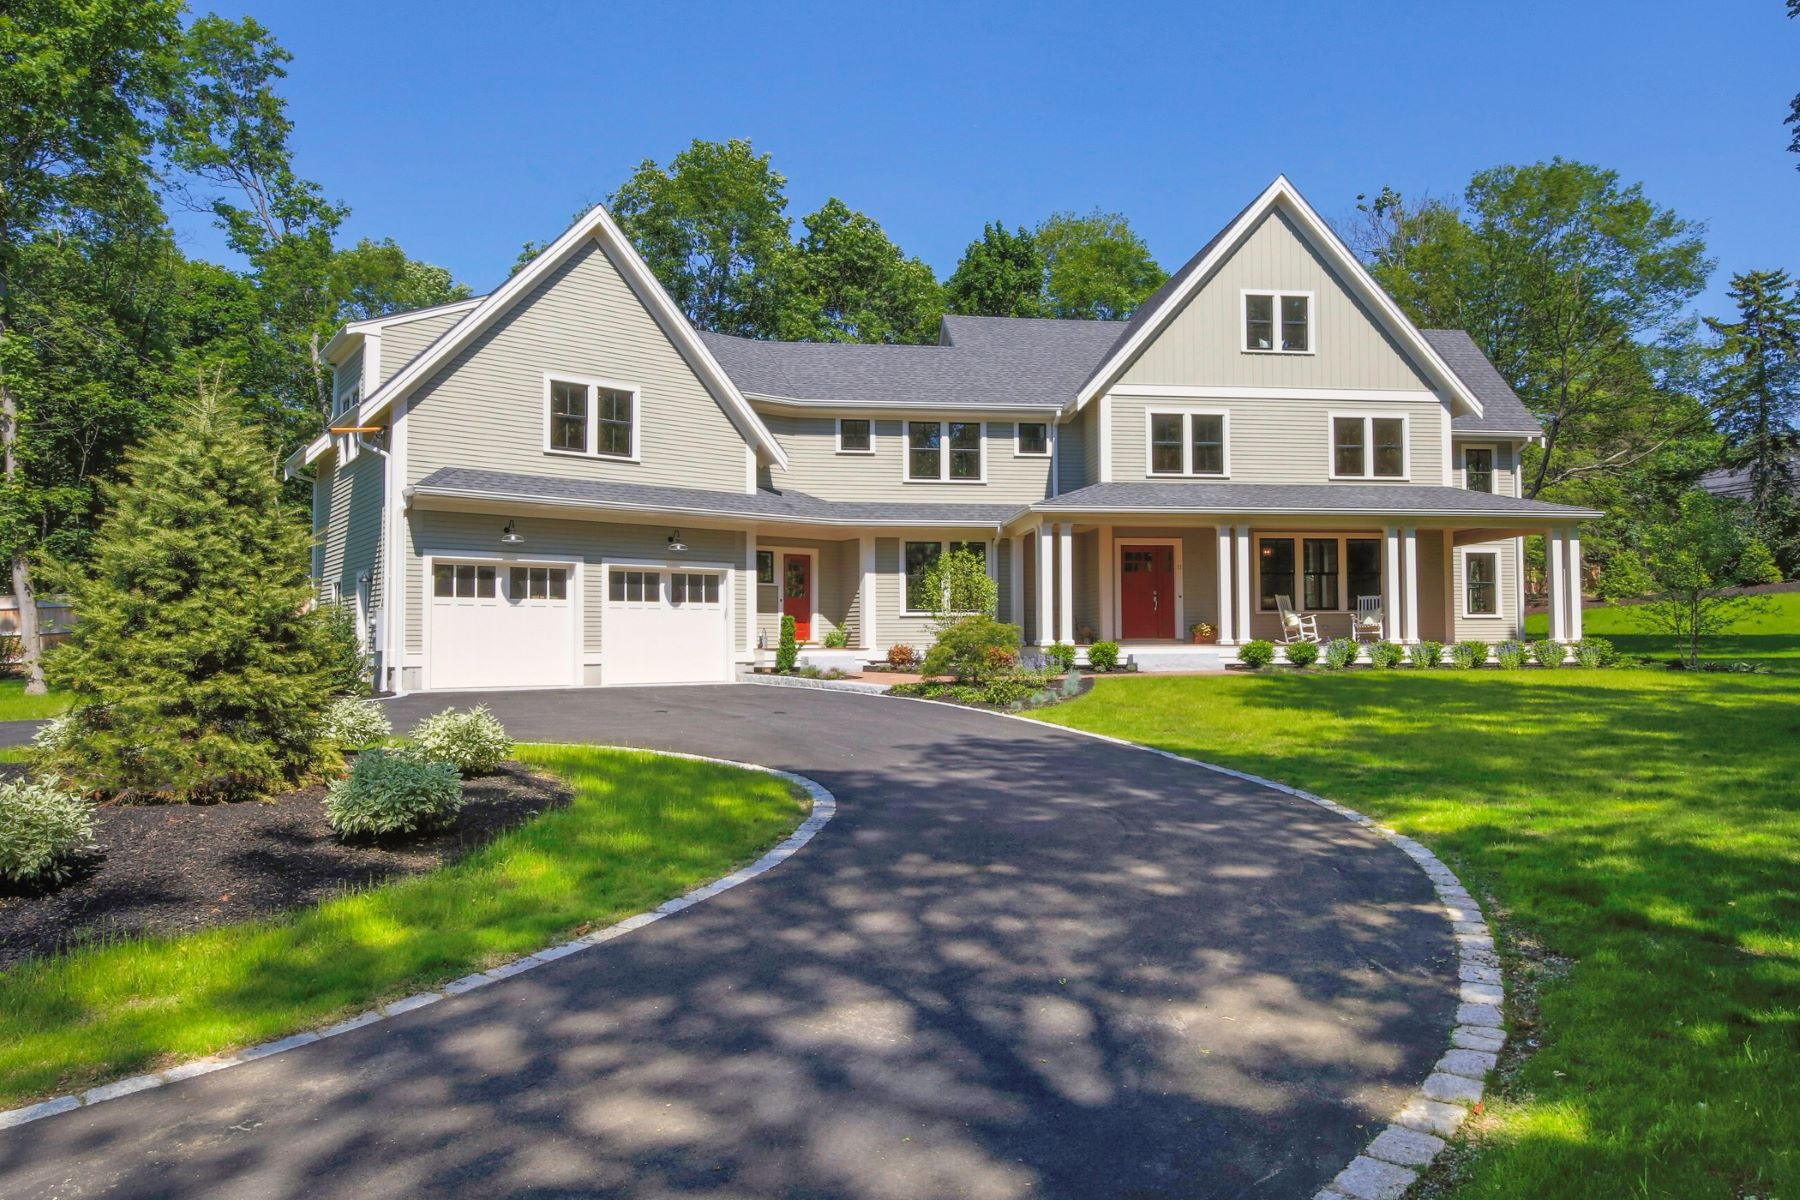 Moradia para Venda às Modern Farmhouse - New Construction 11 Byron Avenue Lexington, Massachusetts, 02420 Estados Unidos